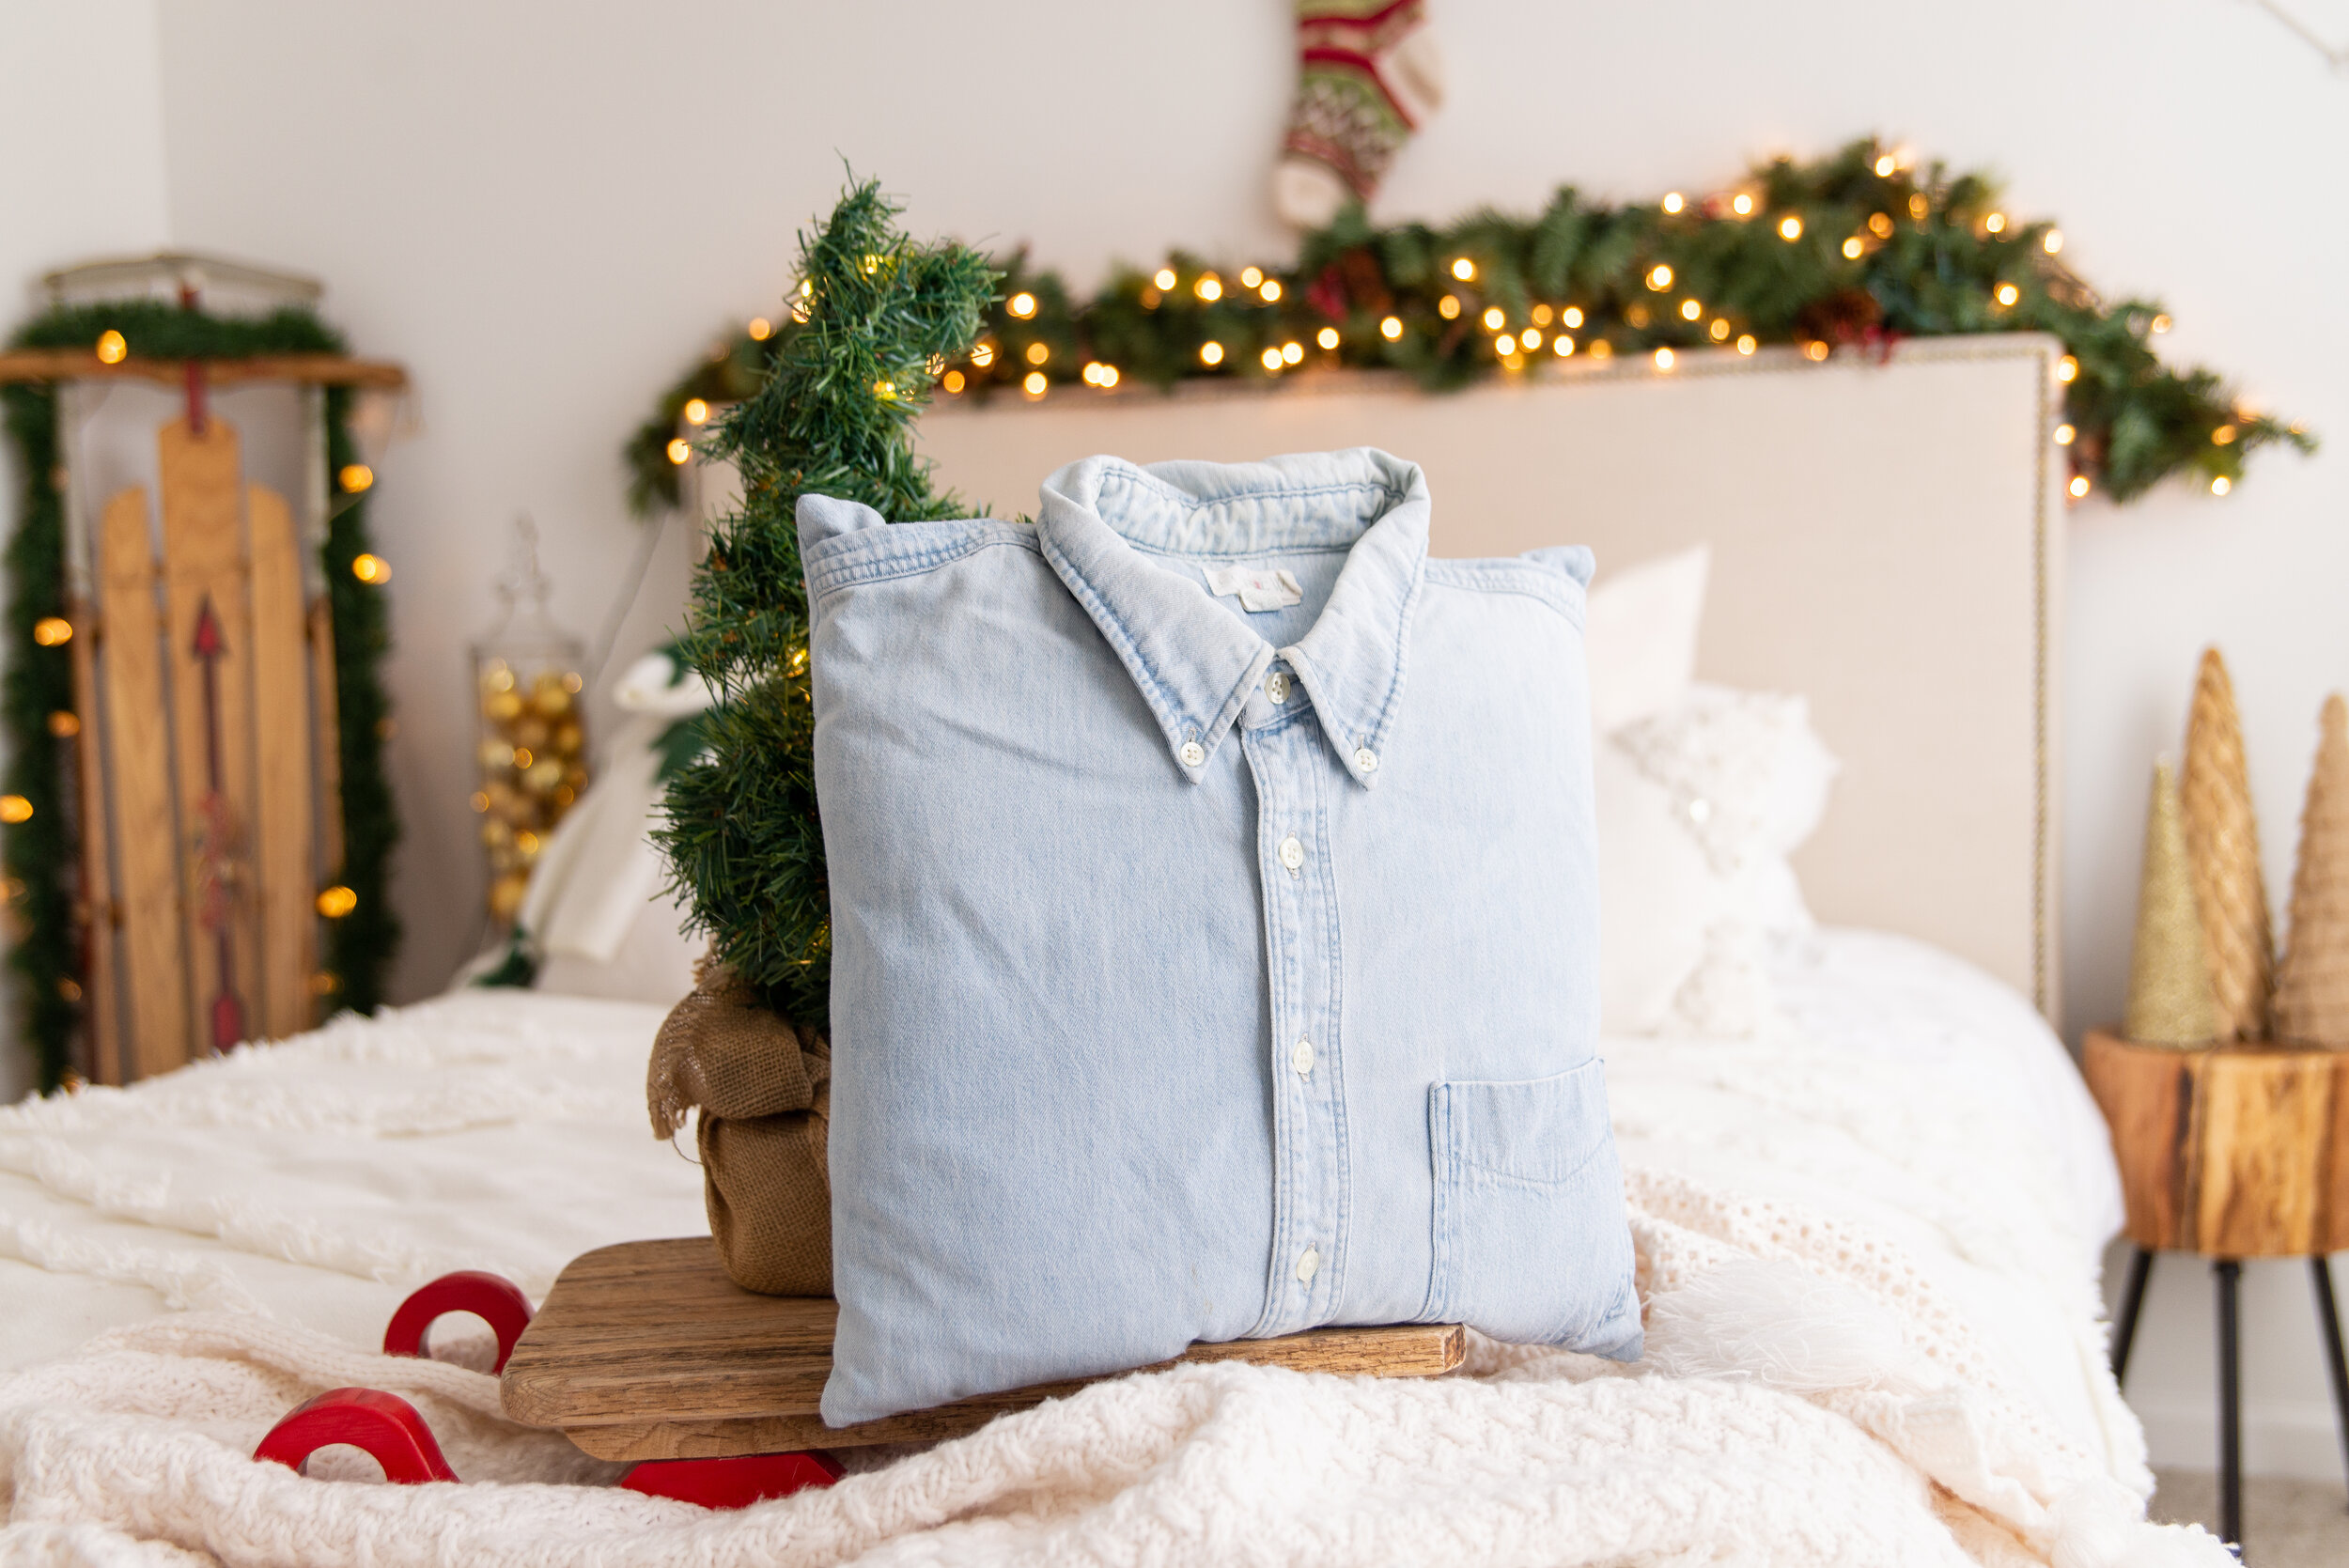 Memory Pillow from the clothing of a loved one